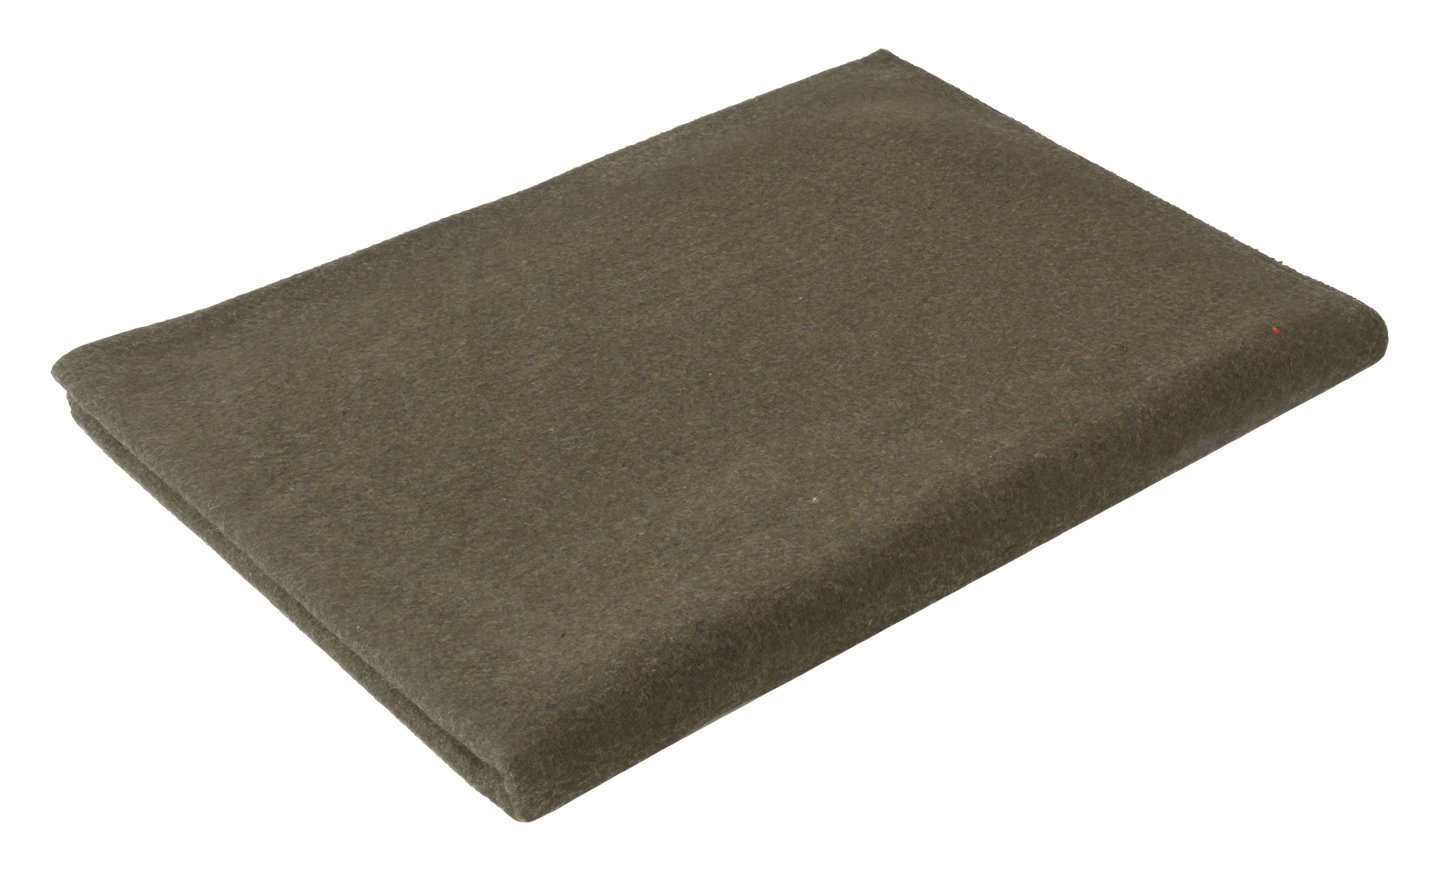 Olive Drab Warm Winter Blanket, 62'' x 80'' (70% Virgin Wool) by Rothco